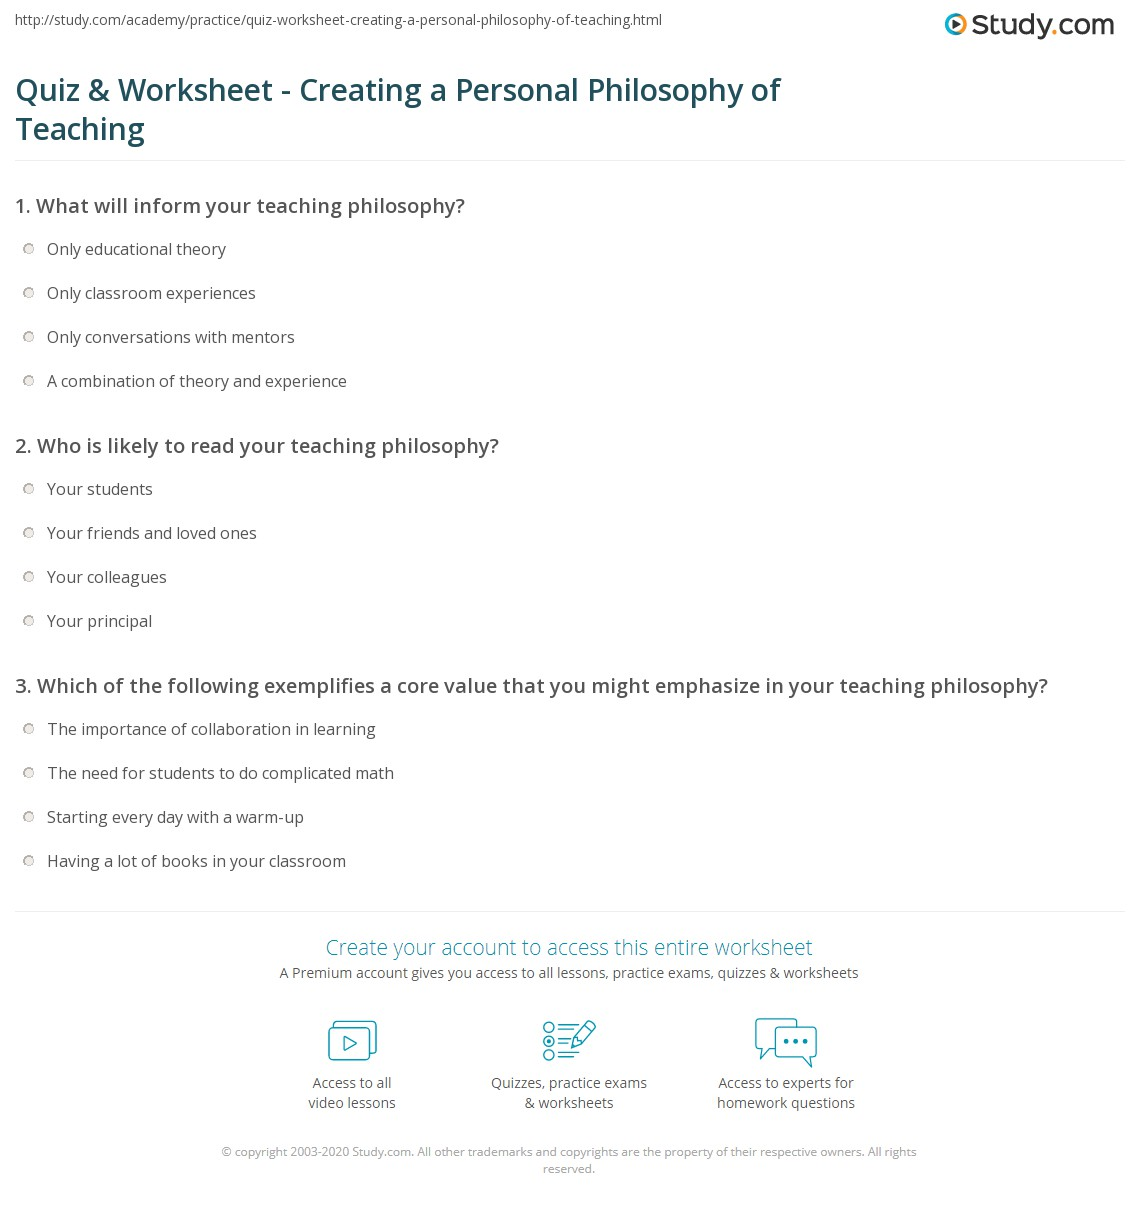 Quiz Worksheet Creating A Personal Philosophy Of Teaching